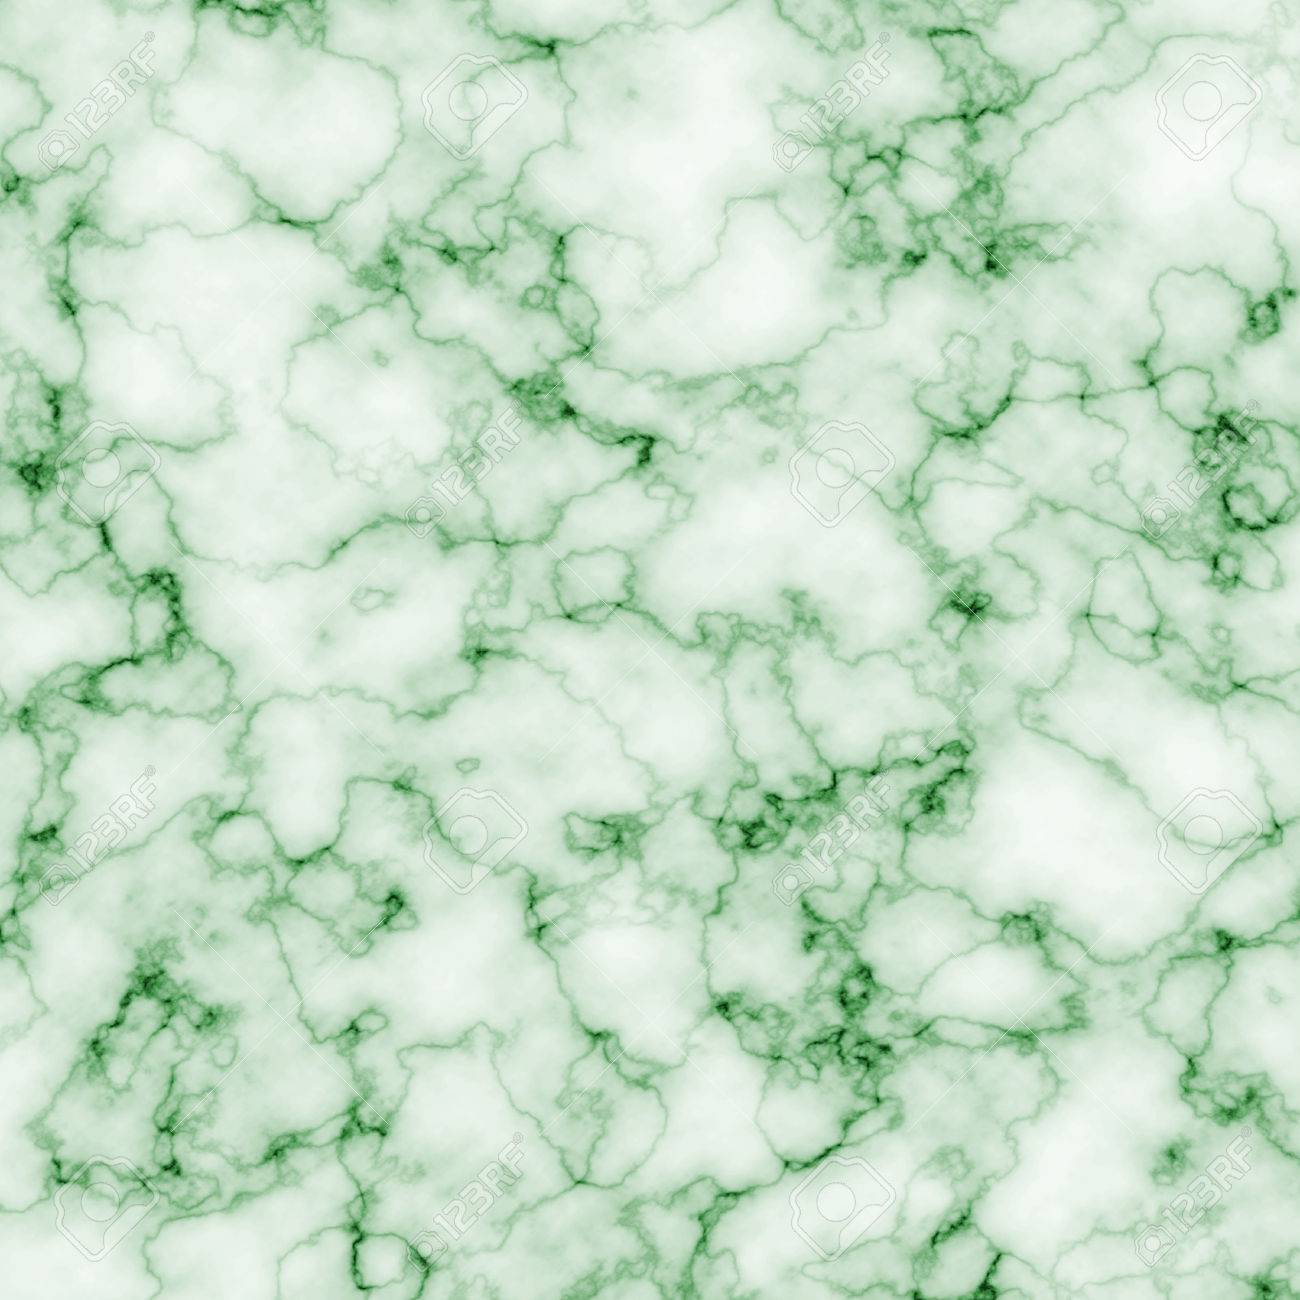 Green Marble Background Stock Photo Picture And Royalty Free Image Image 25990833